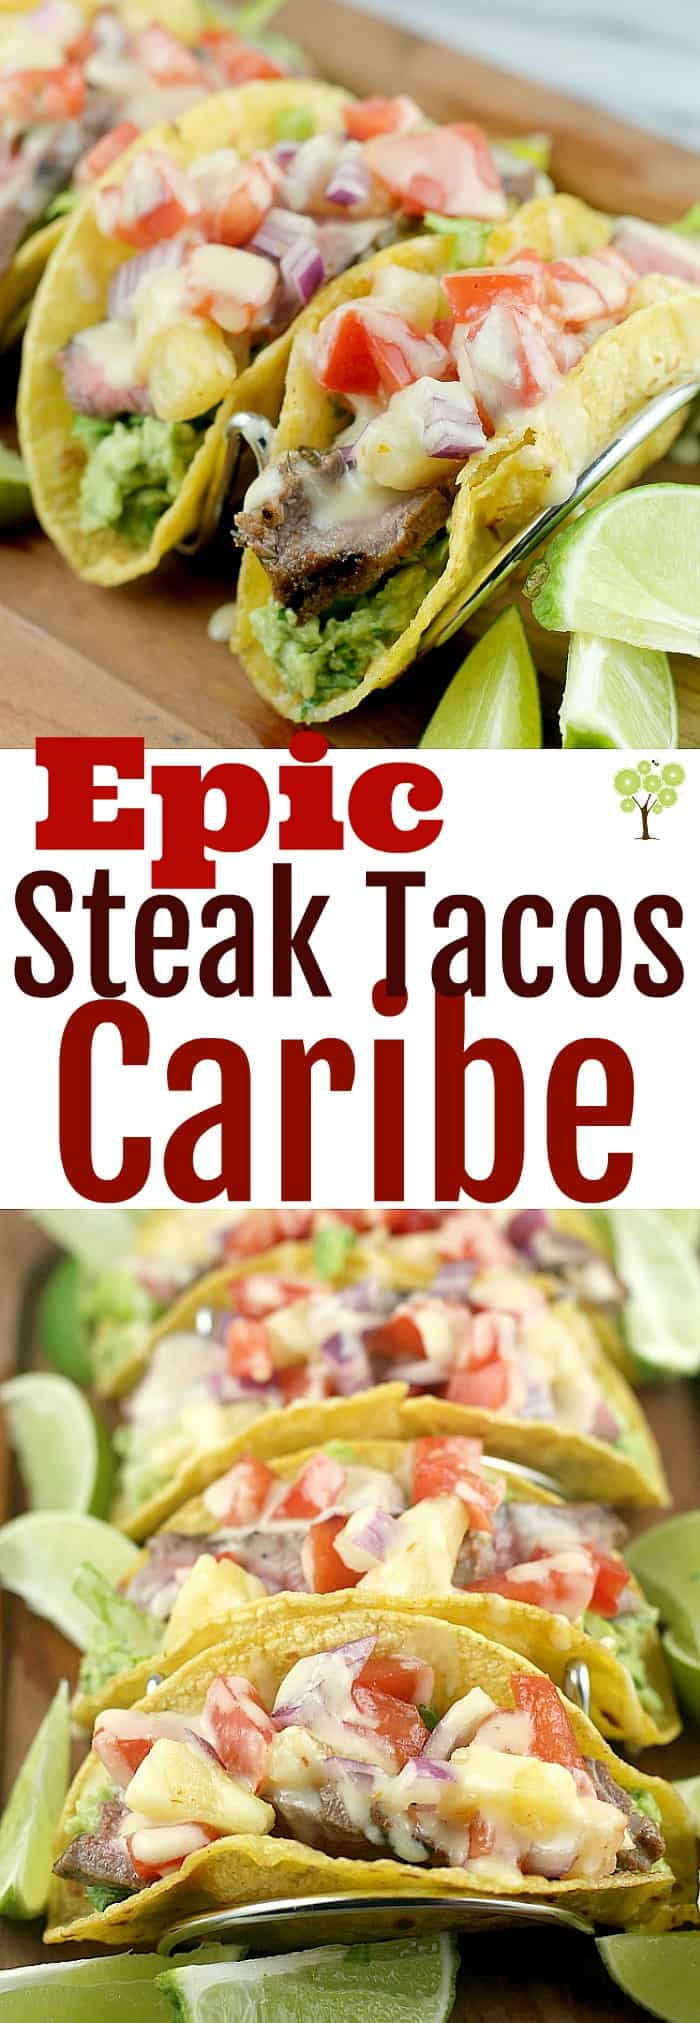 Epic Steak Tacos Caribe with Pineapple Salsa, Guacamole, and Caribbean Queso Fundido #ad #KingOfFlavor #FieldToBottle ms4-21+